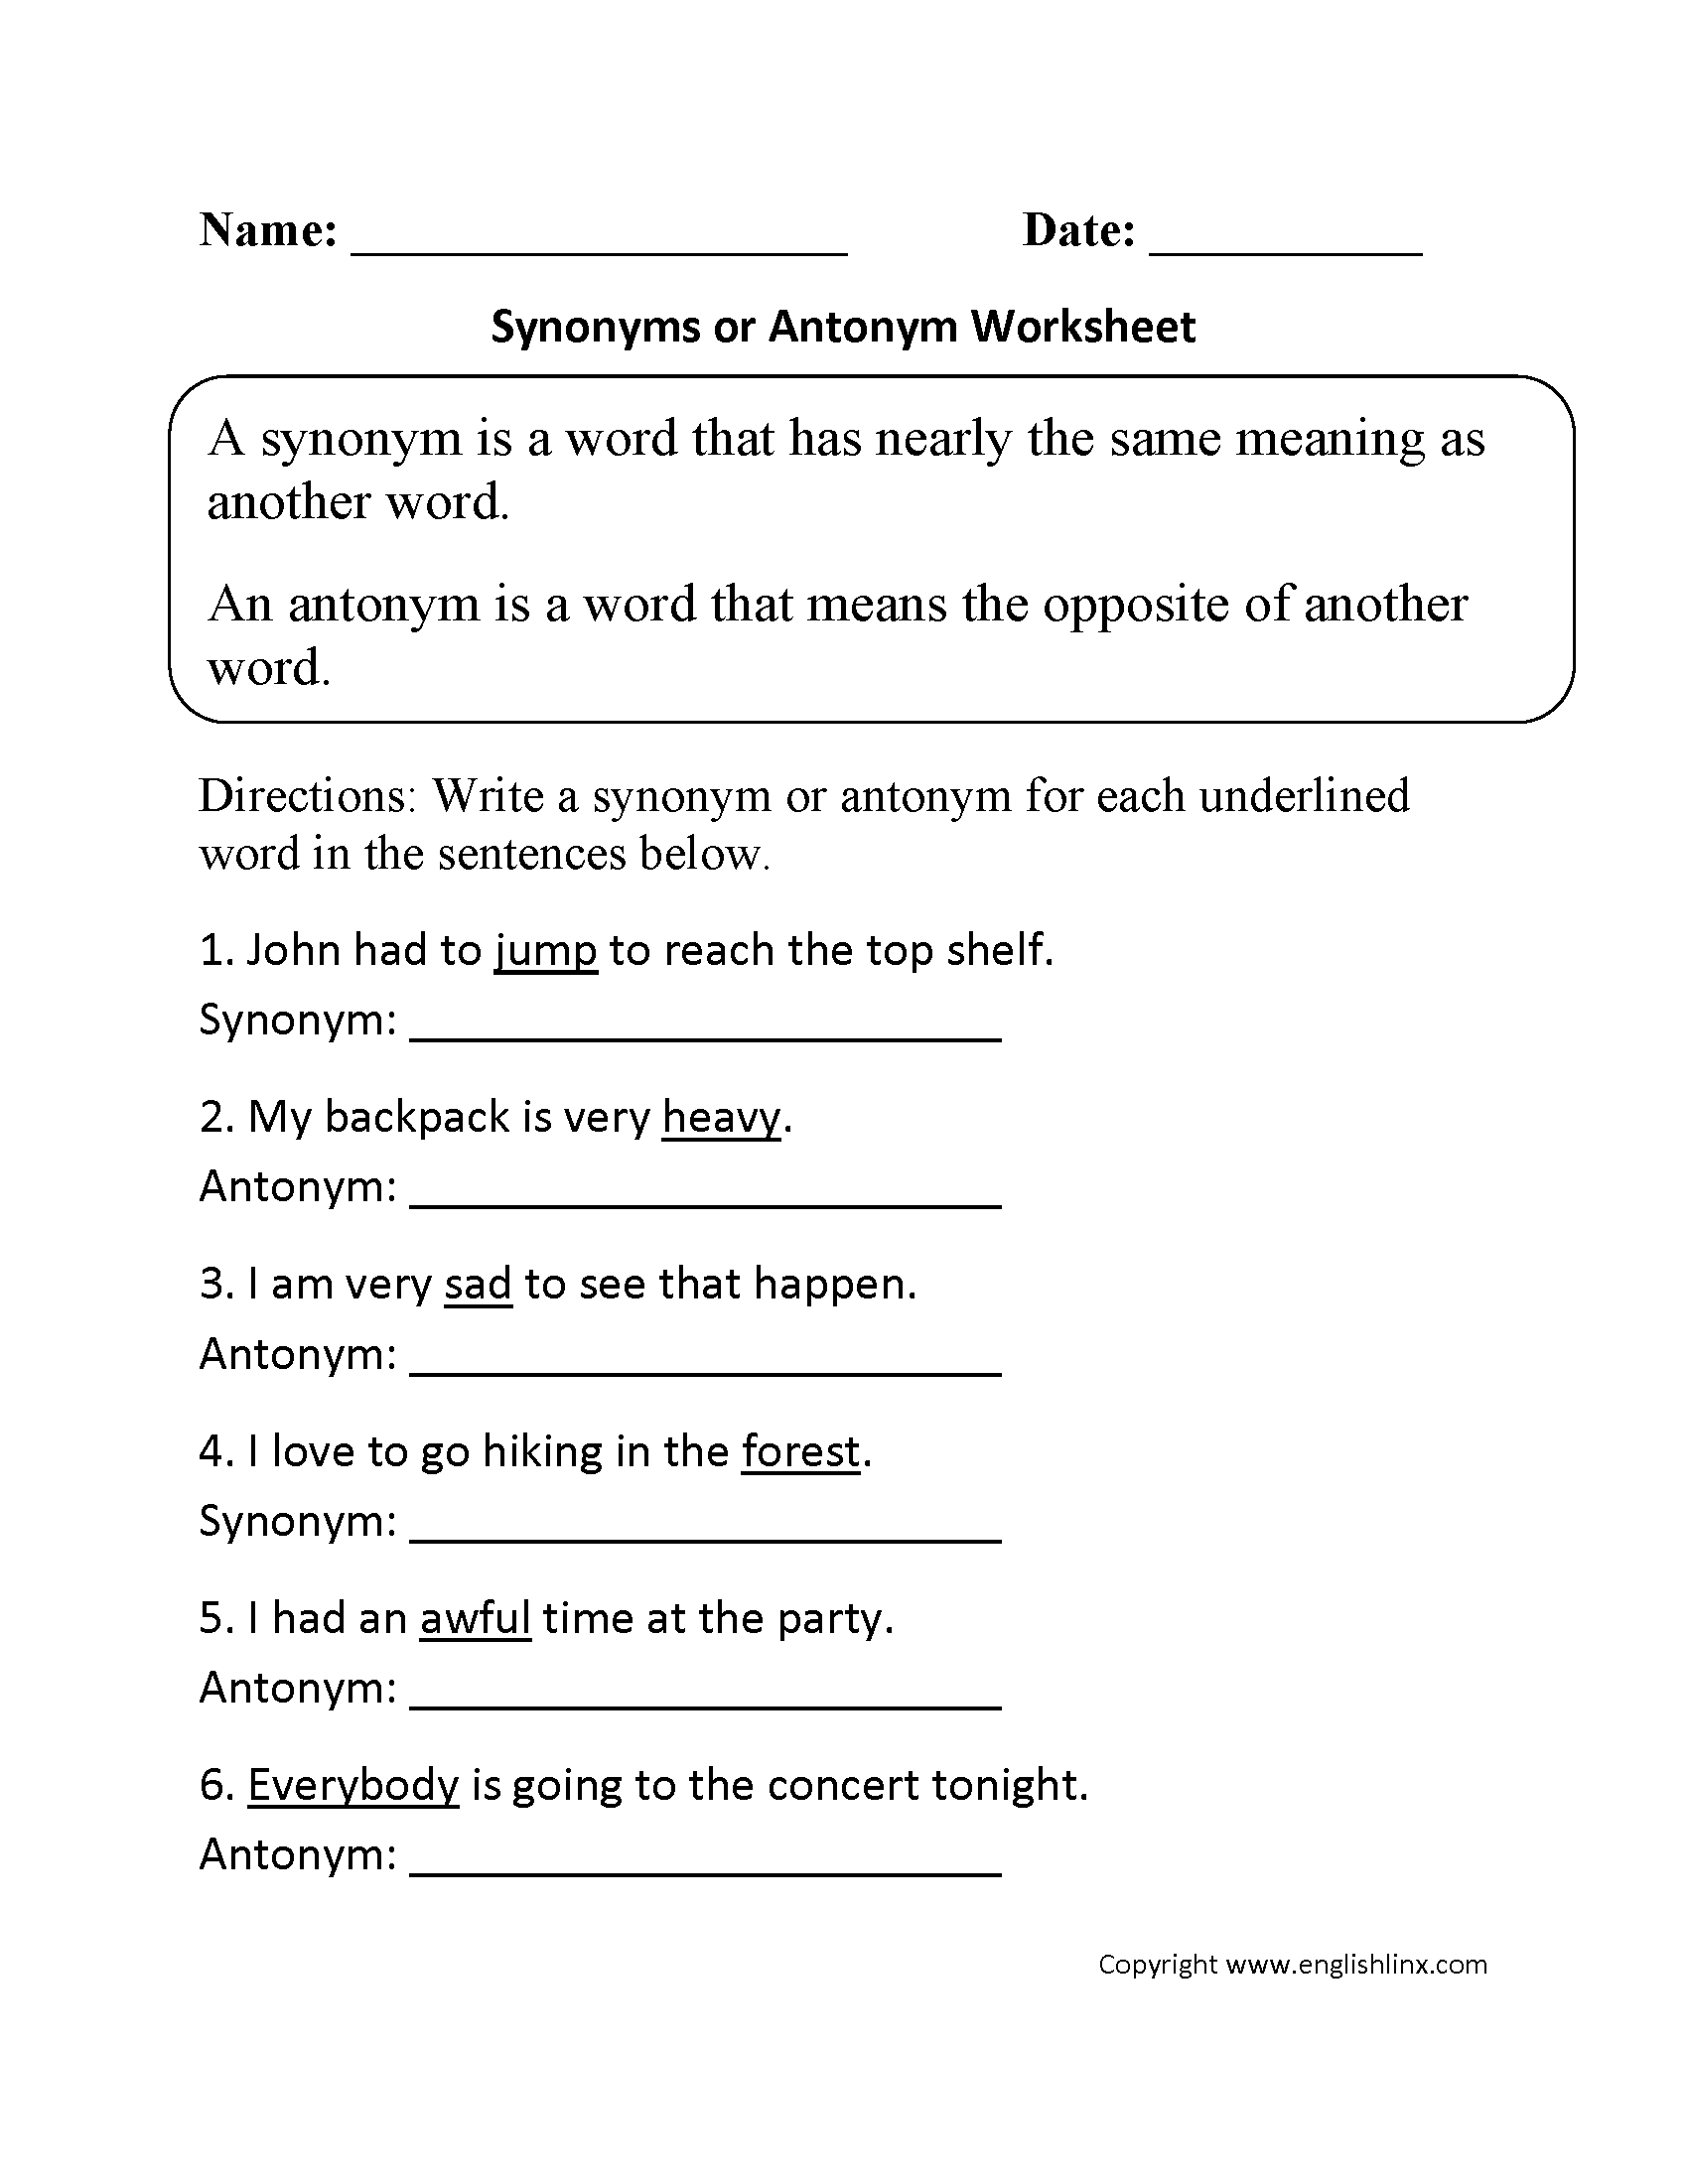 Antonyms Worksheet For 2nd Grade   Printable Worksheets and Activities for  Teachers [ 2200 x 1700 Pixel ]